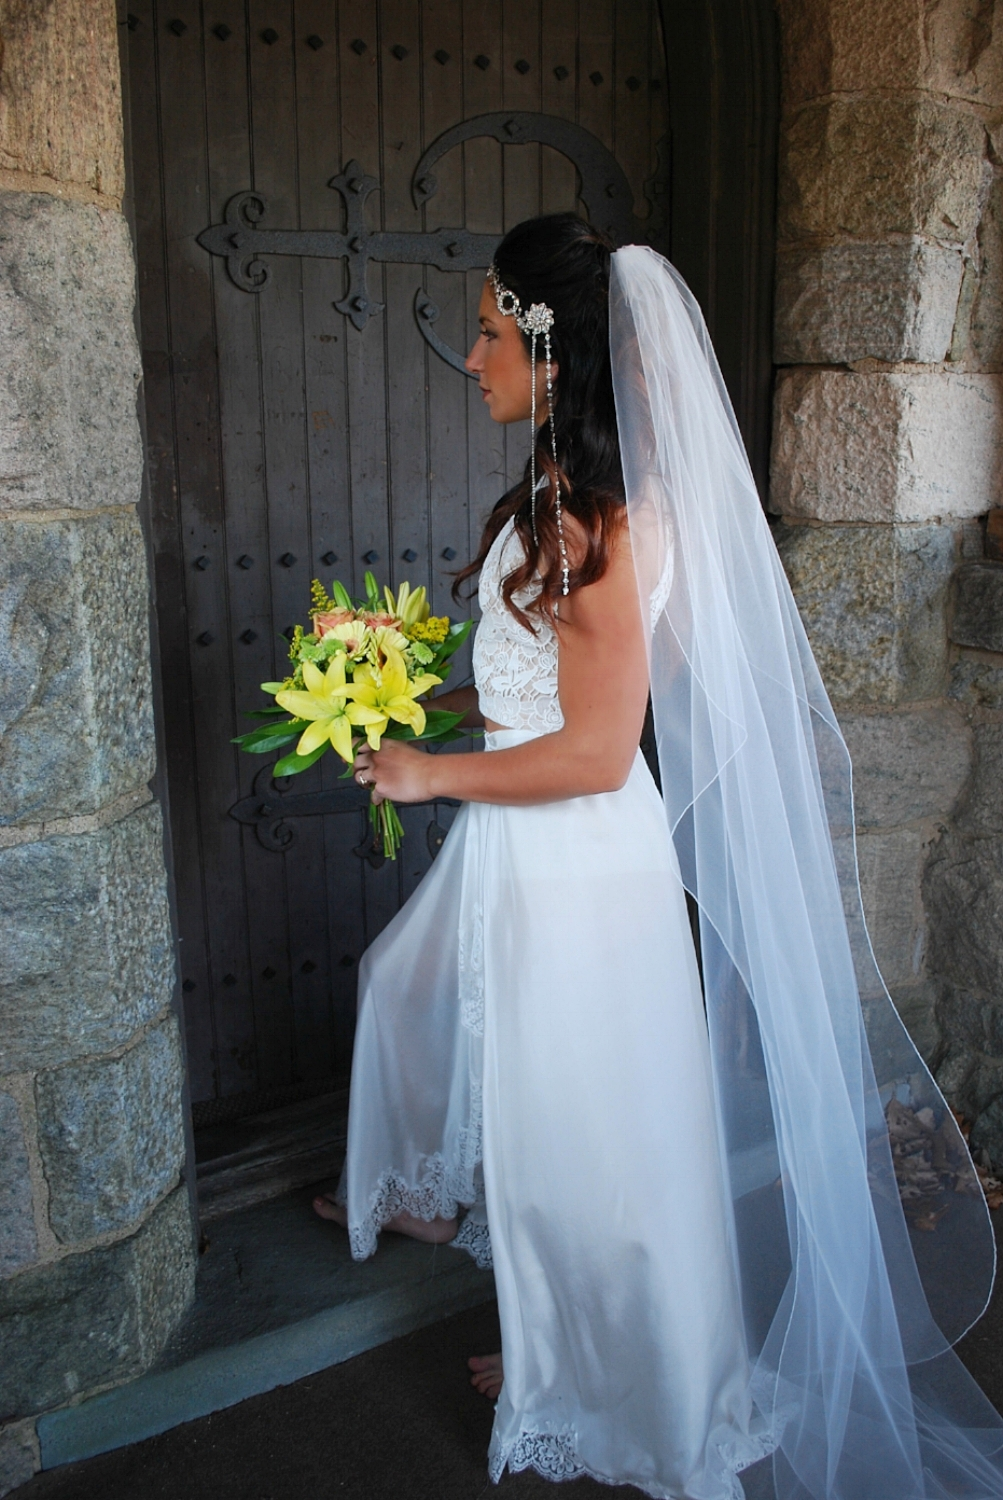 PIctured is our April headpiece with Sadie brooch, Anna veil, and custom silk and chantilly lace bridal skirt modeled by  The Bride Trainer .